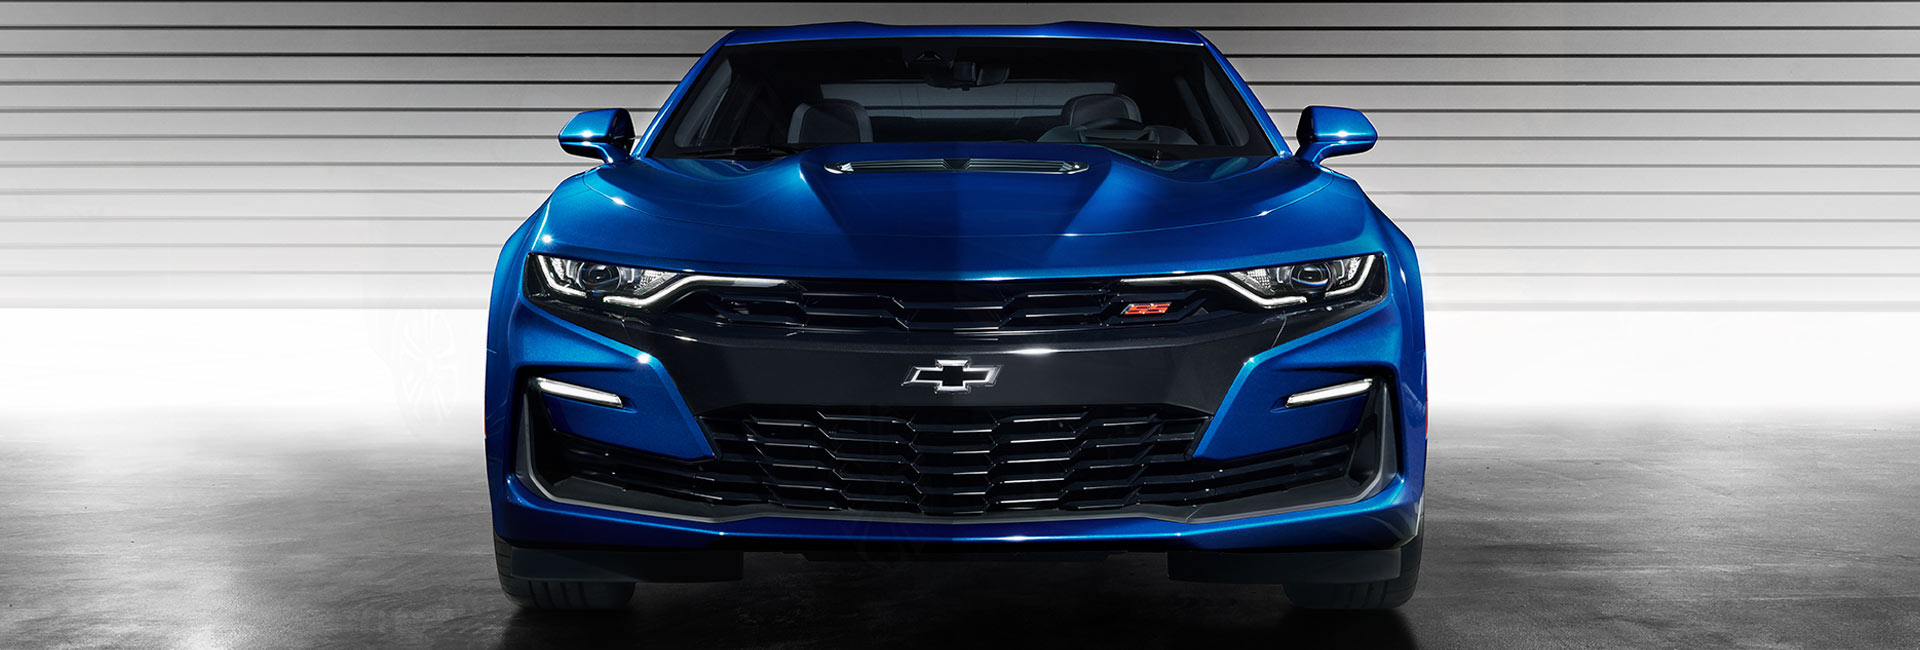 Picture of the 2020 Chevy Camaro for sale at Spitzer Chevy Lordstown